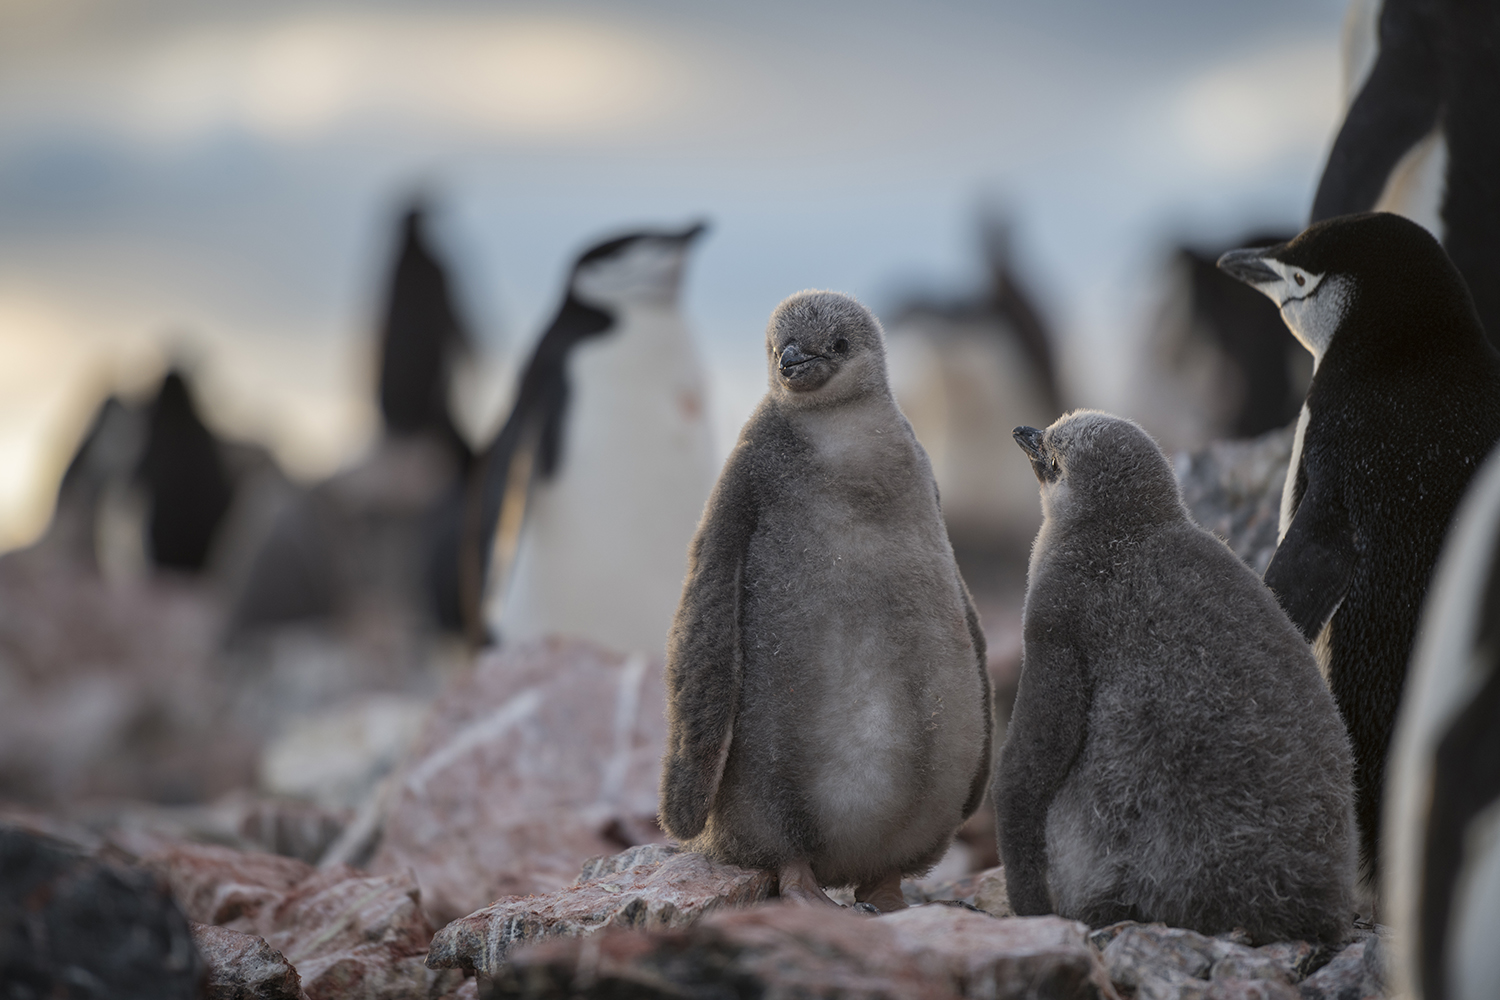 By mid-January, most Chinstrap Penguin nests have large, fluffy, gray-colored chicks. If all goes well, a pair of penguins will raise two chicks that fledge (become independent) in February or March.